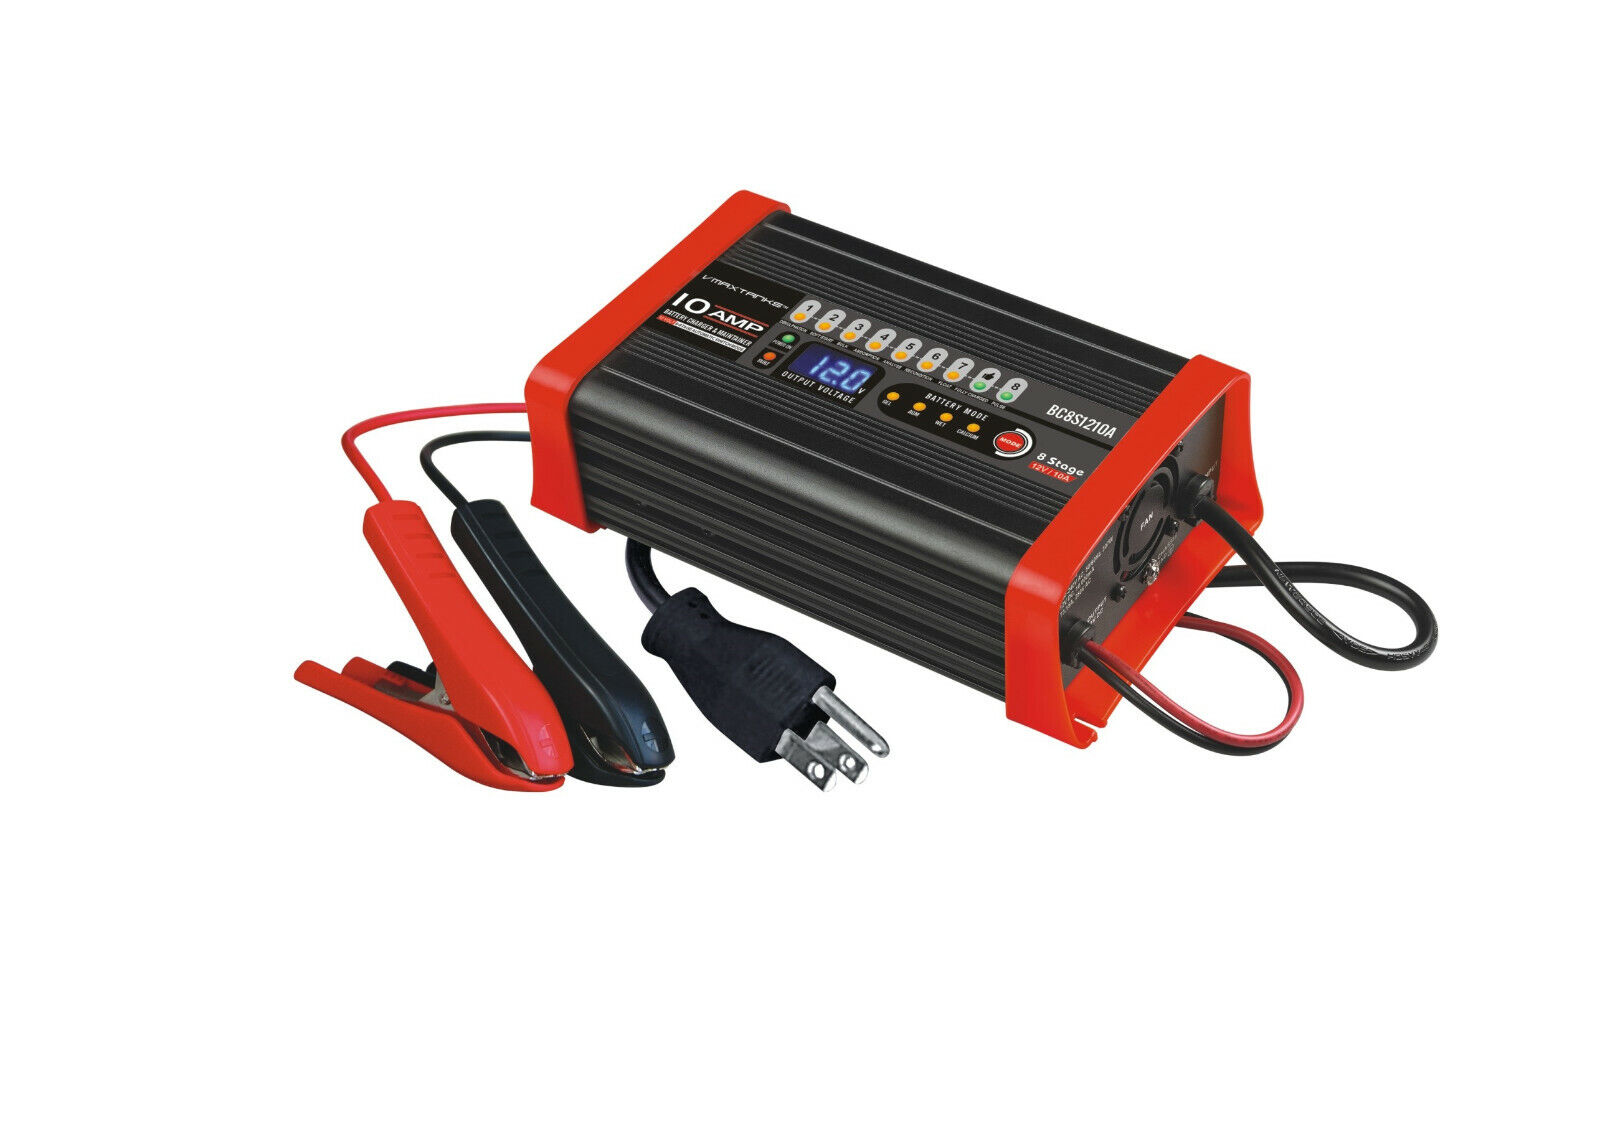 VMAX BC8S1210A 12V 10A Smart Charger and Tender for VMAXTANK